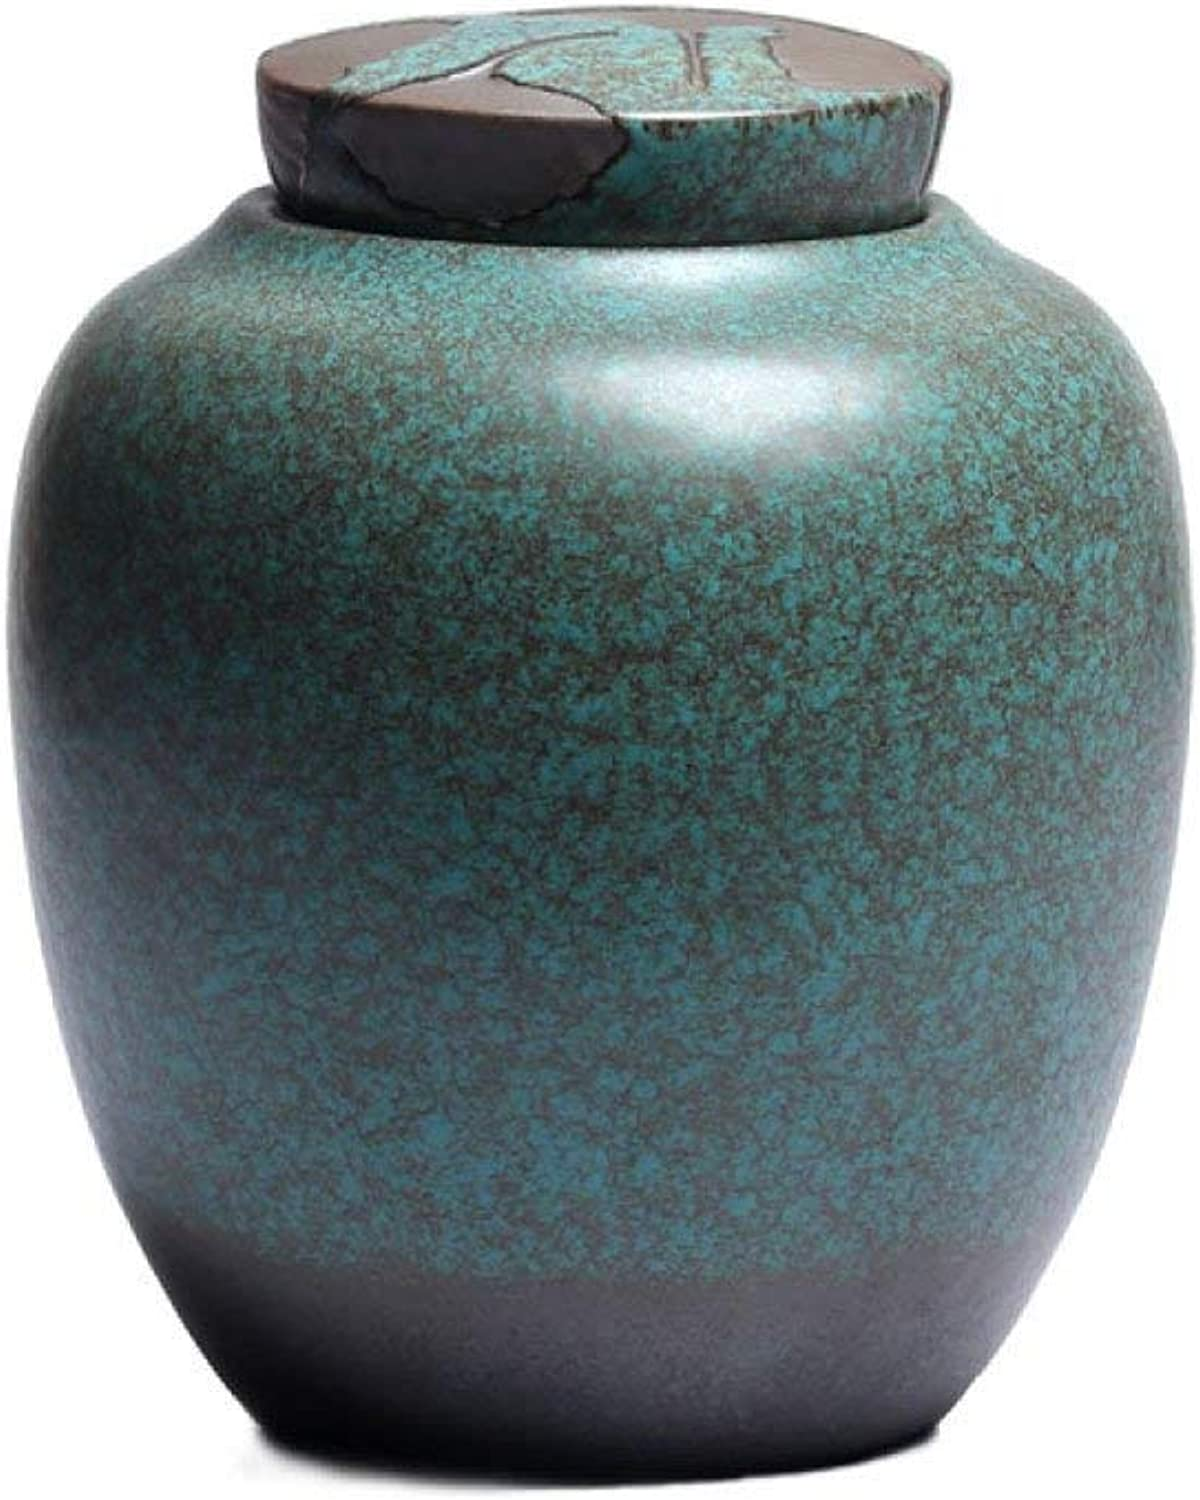 Cremation Urn for Human Ashes Adults and Keepsake Urns  Display Burial Urns at Home Or in Niche at Columbarium16  19cm